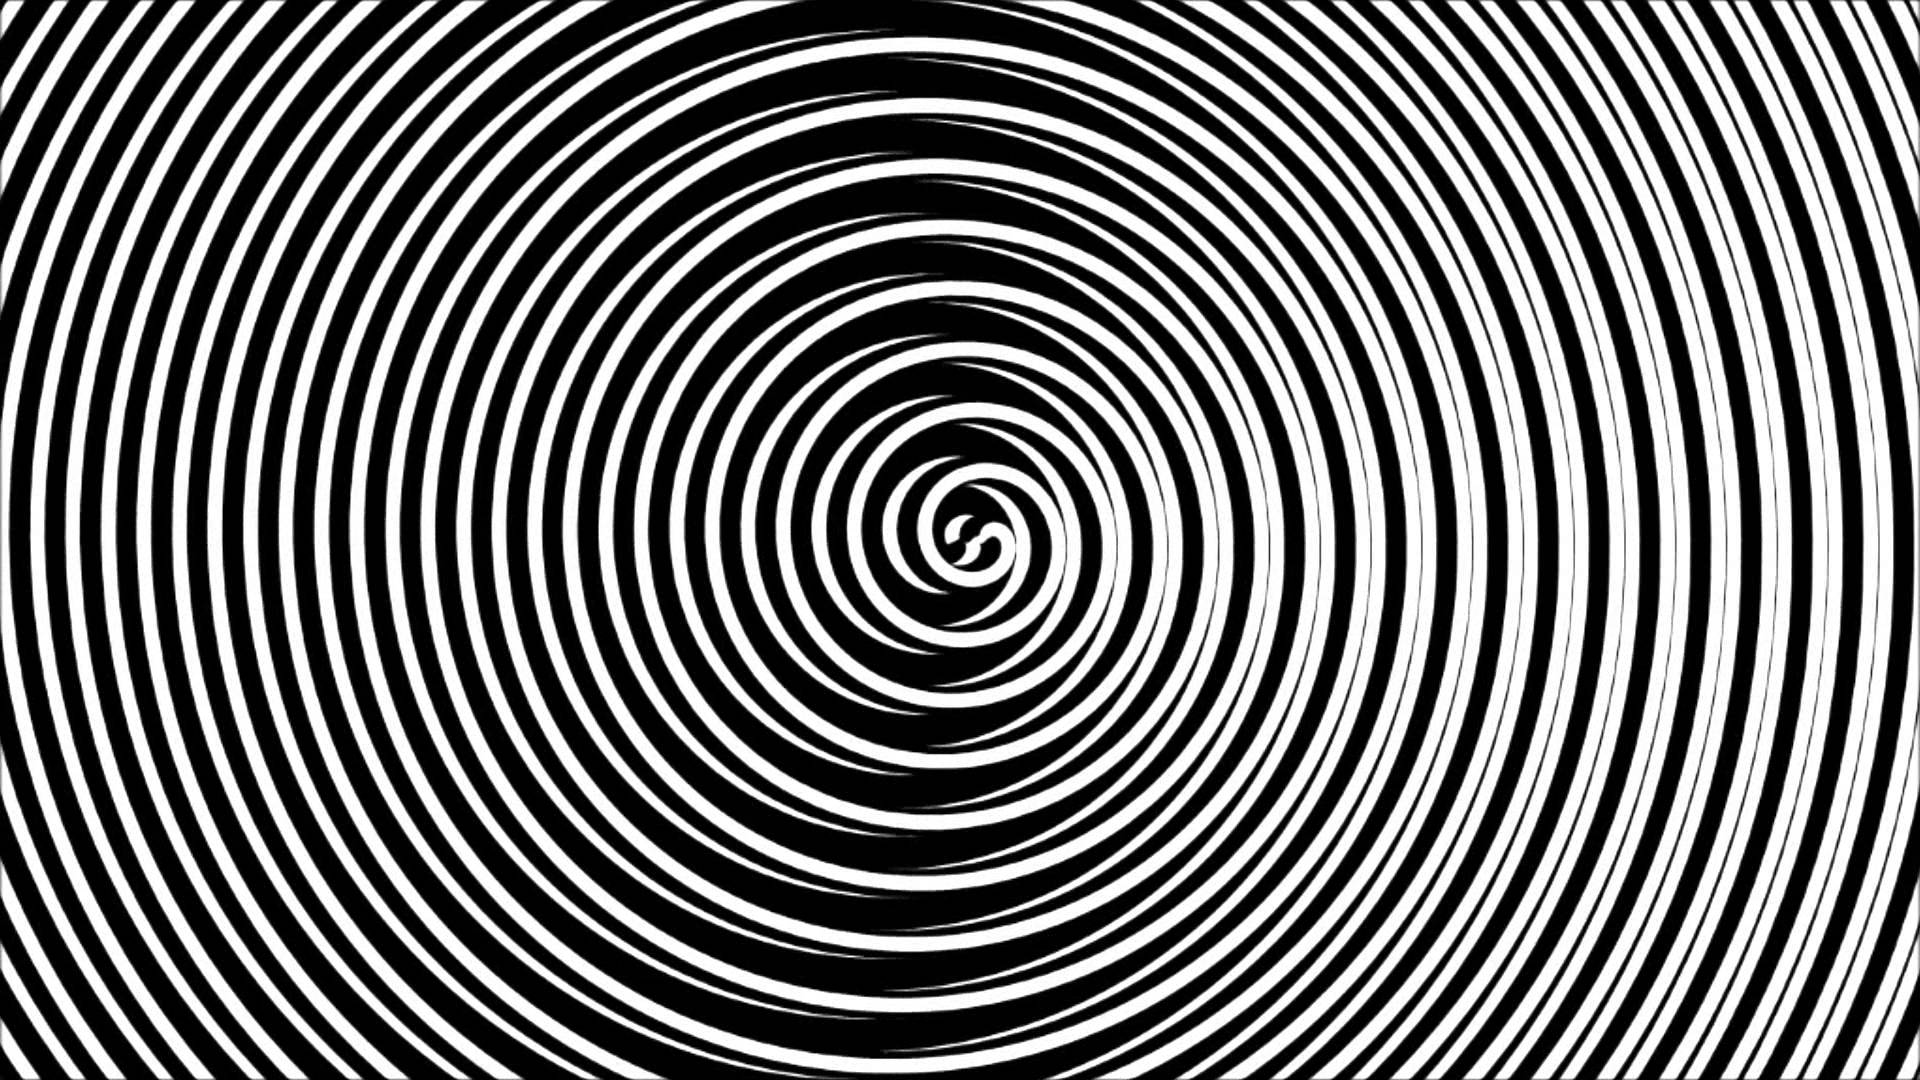 Hypnosis Wallpapers High Quality Download 1920x1080